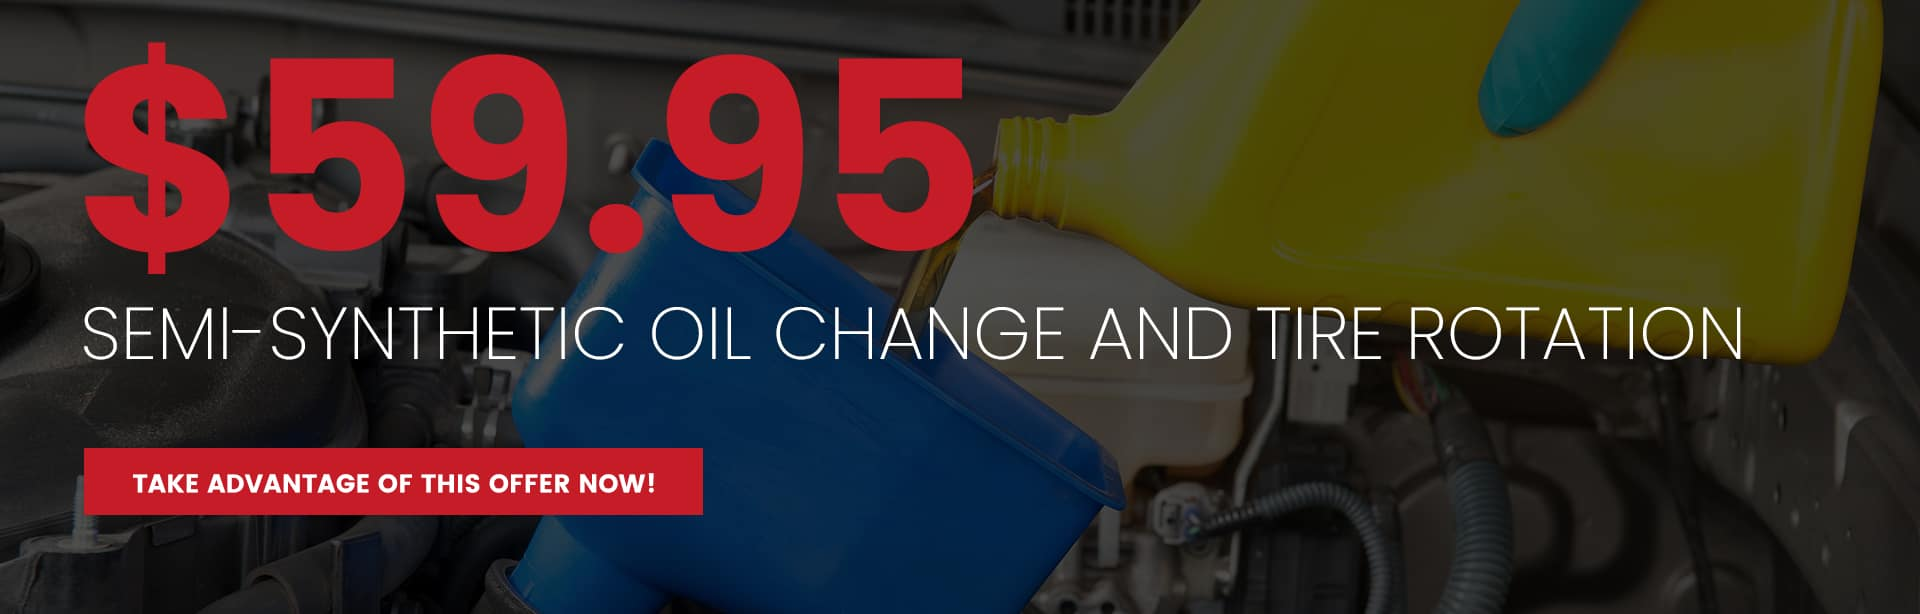 may2021 – $59.95 semi-synthetic oil change and tire rotation